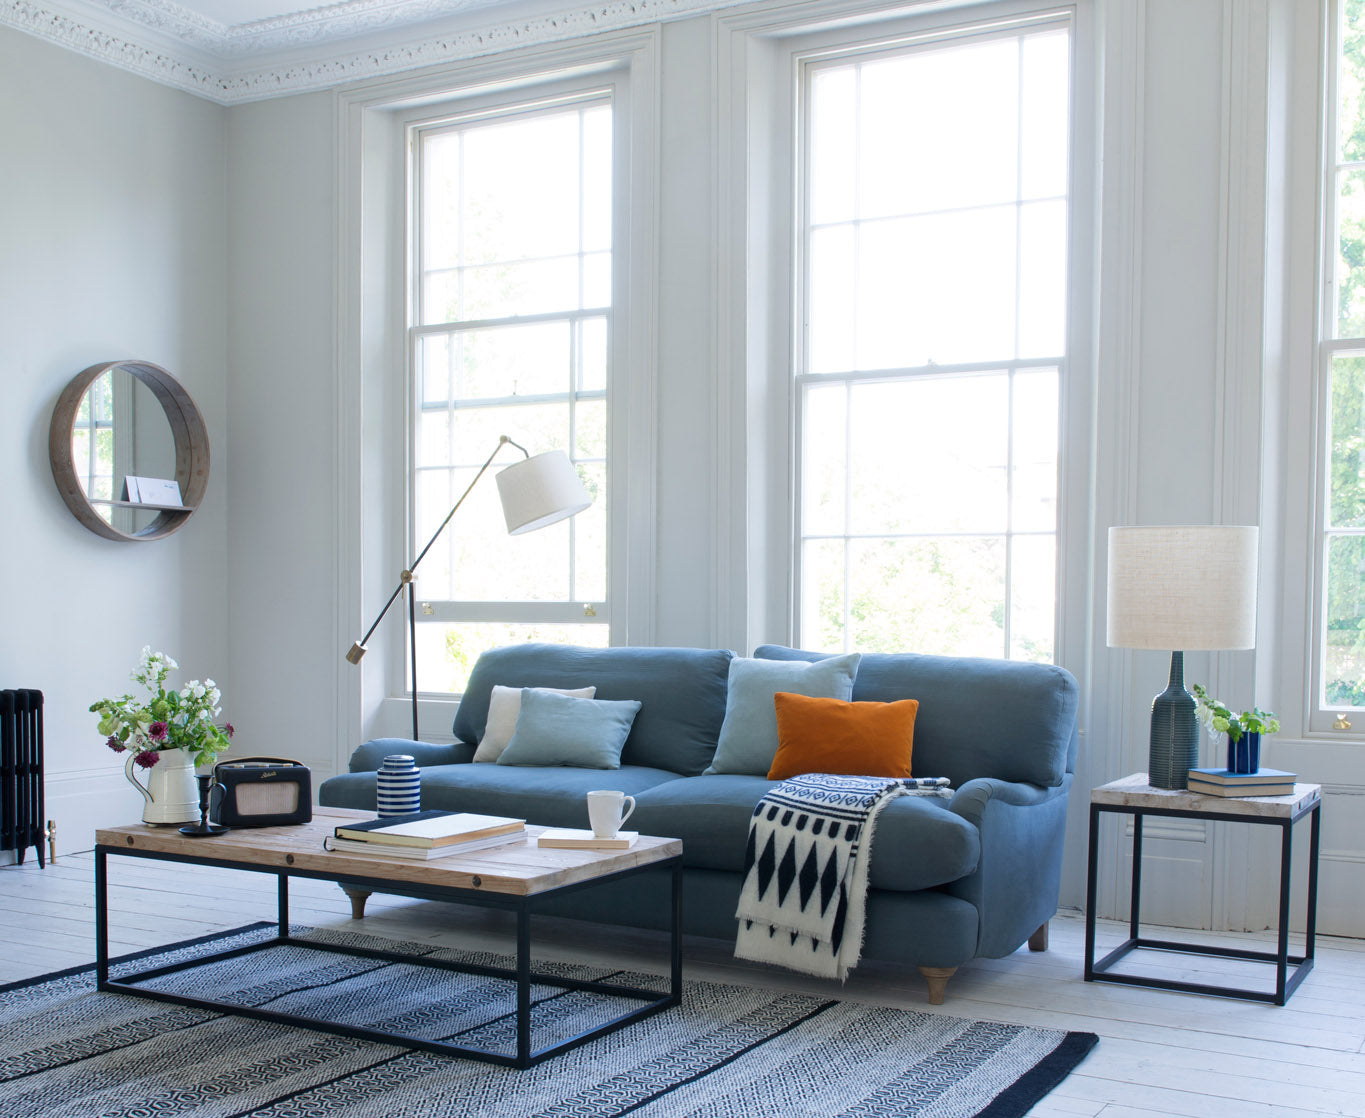 Loaf rustic interior design with blue sofa and vibrant cushion combinations